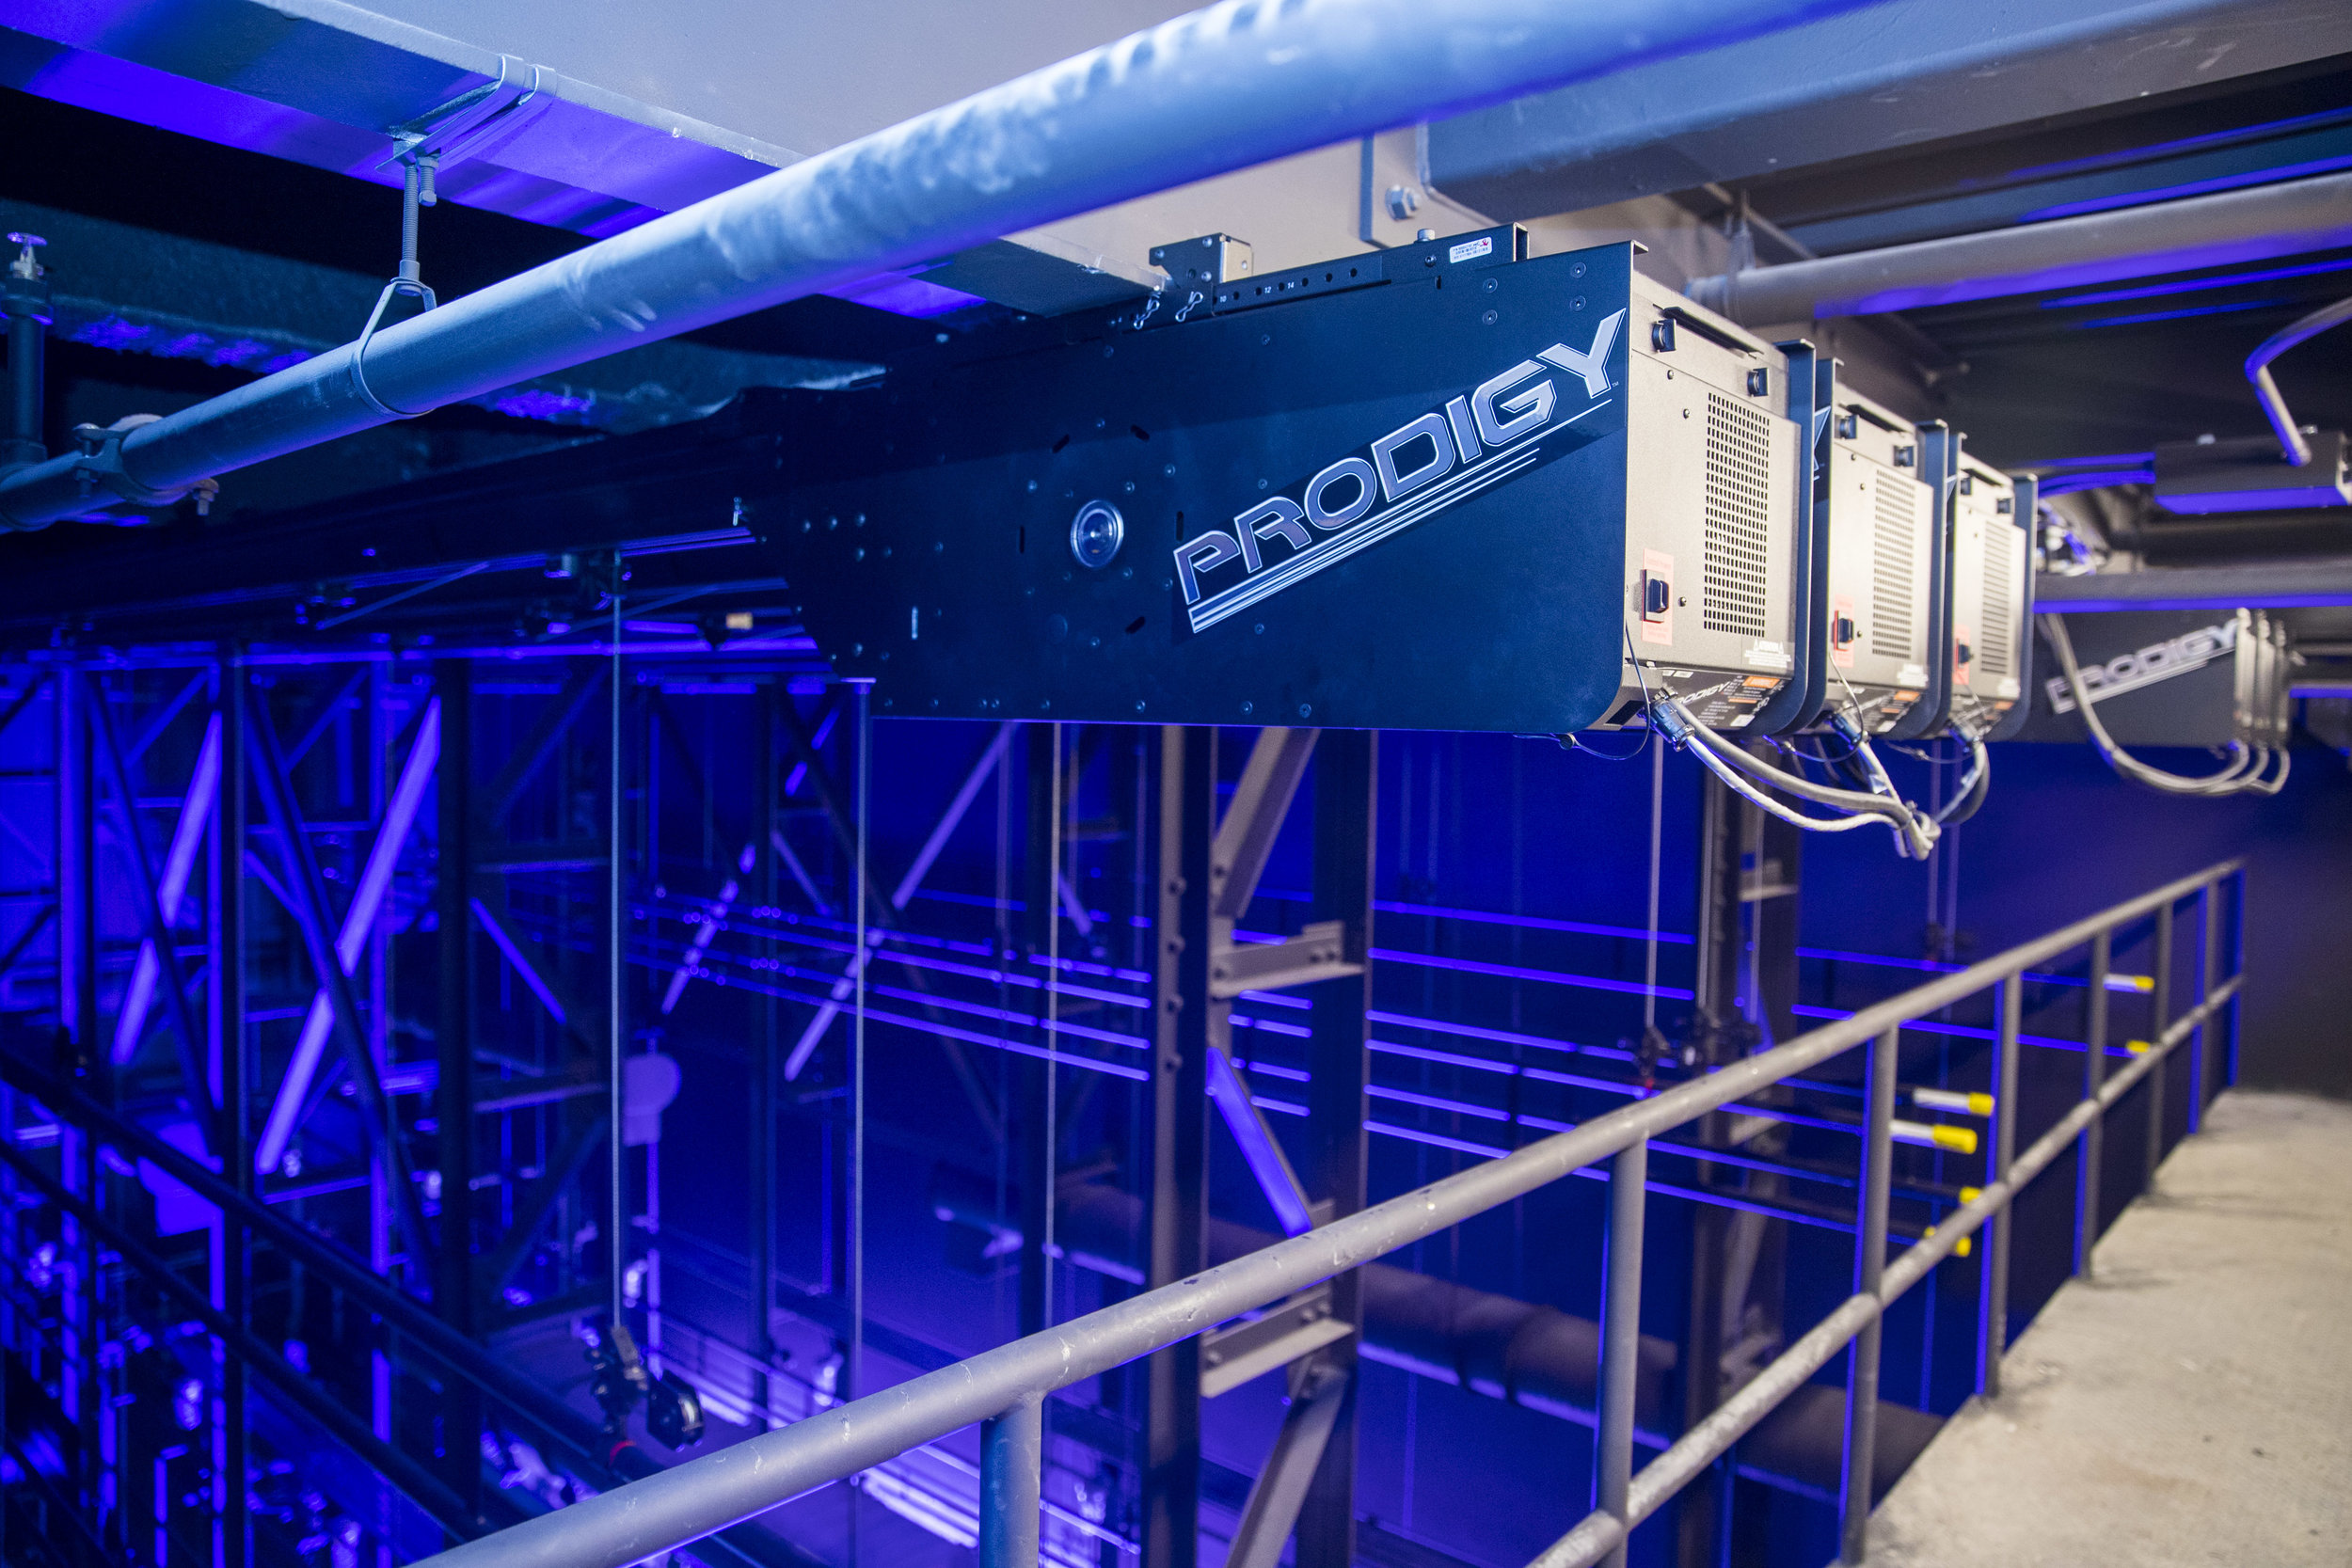 ETC Prodigy motorized hoists  in Phillips Exeter Academy's Mainstage Theater.